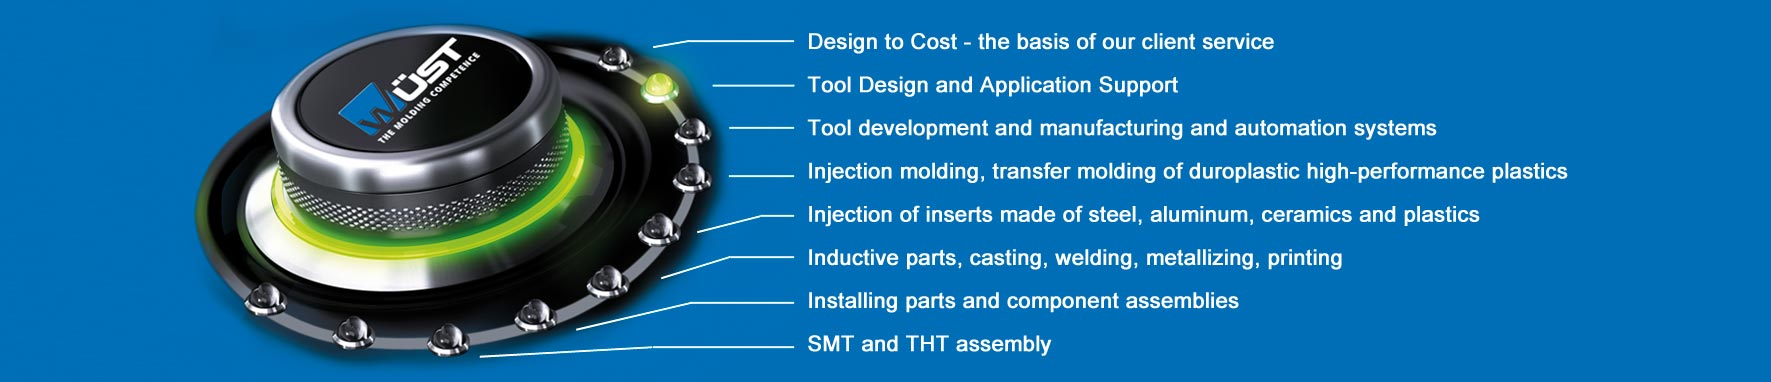 WÜST-Services around precision injection molding